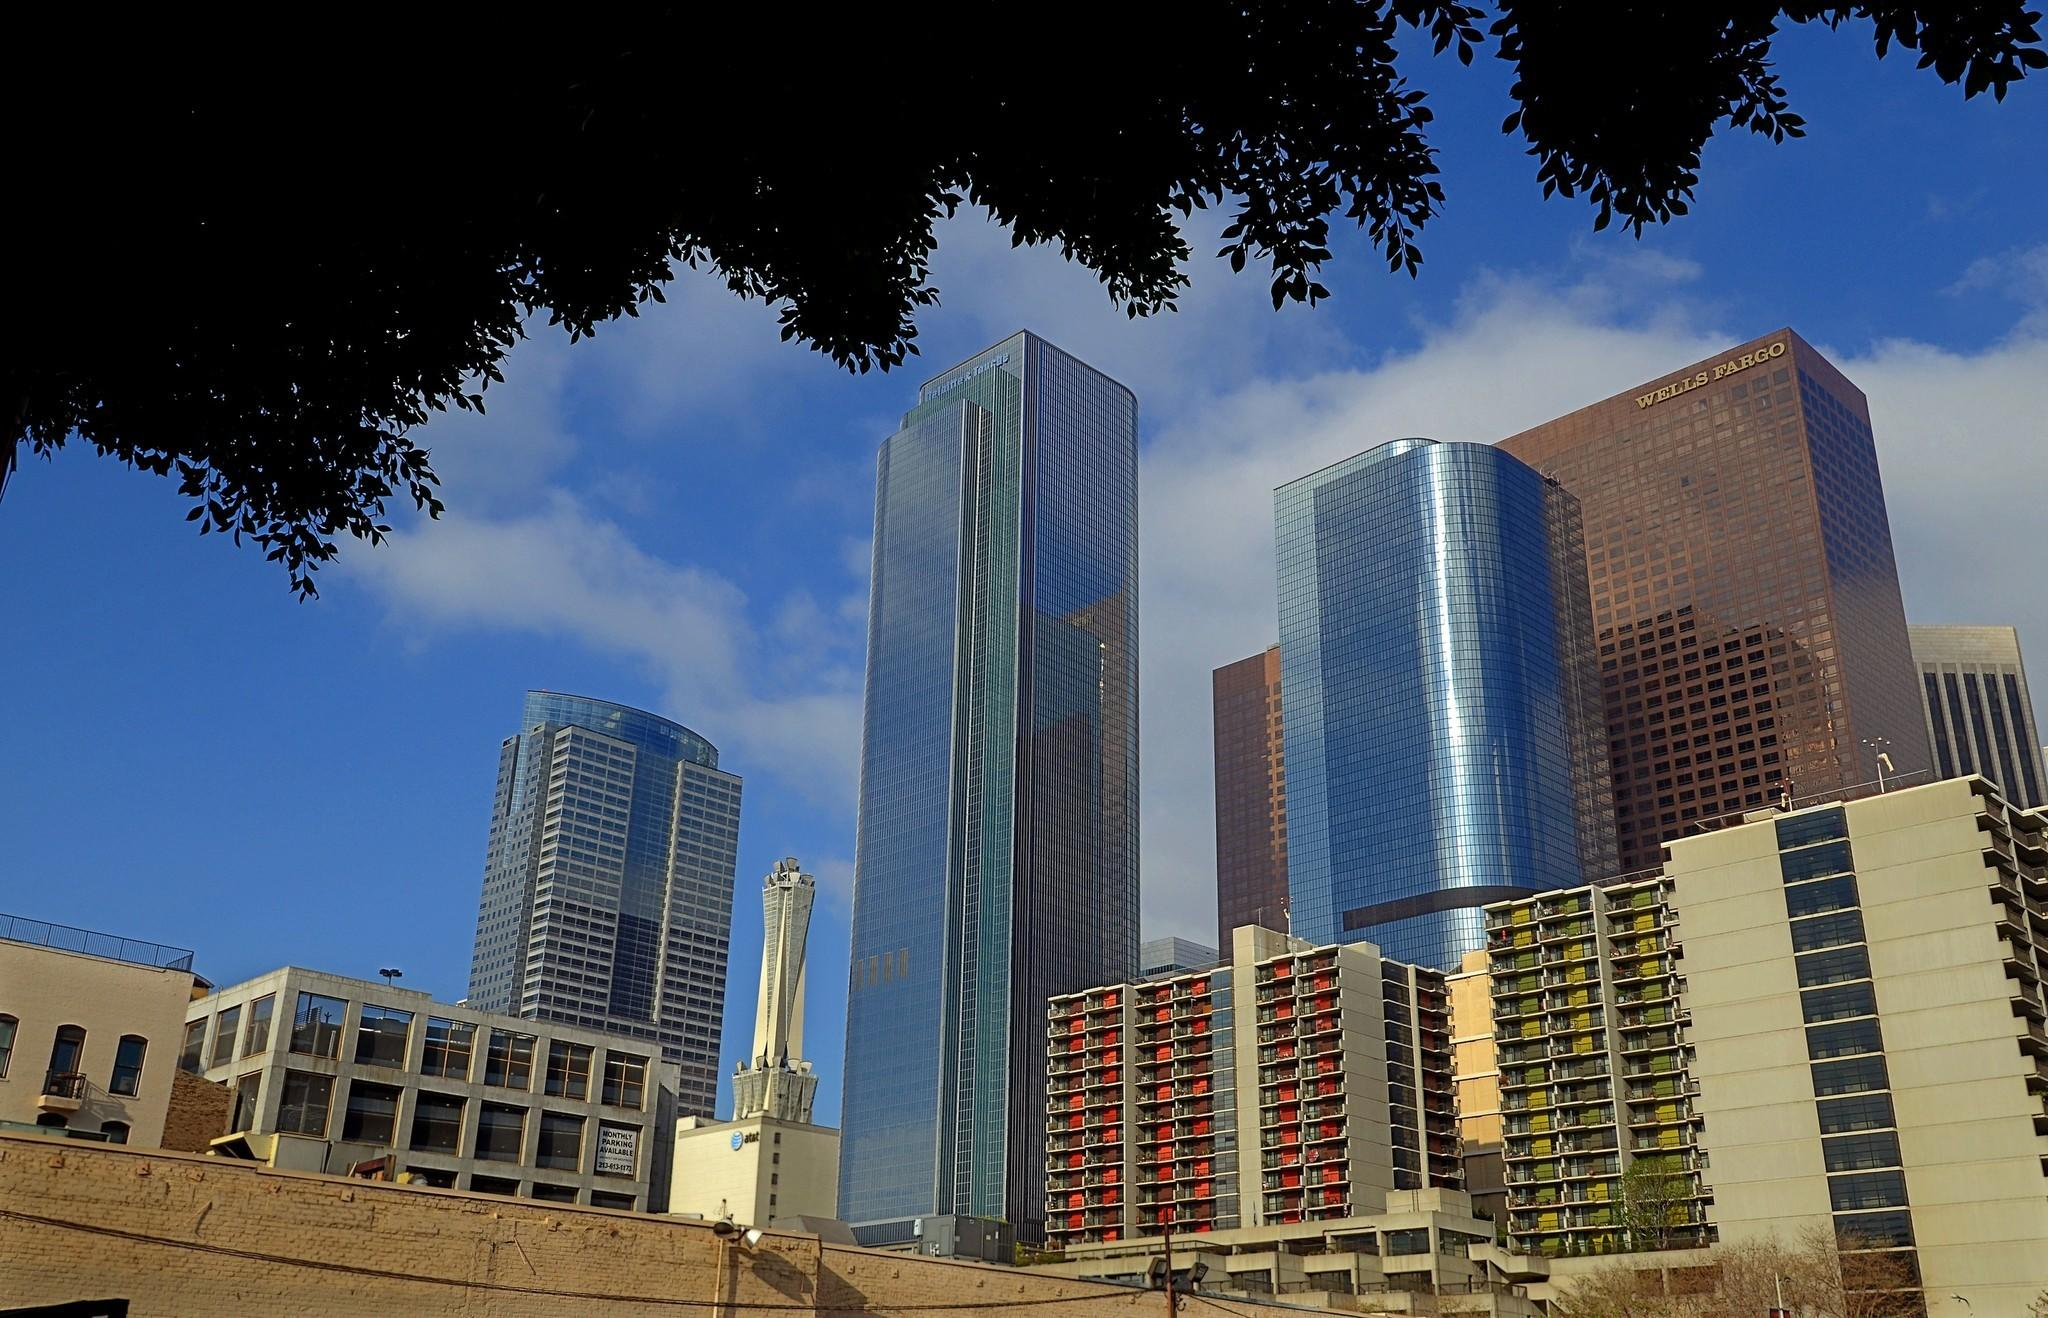 Office vacancy in the Southland is reaching its lowest level since 2008. Above, high-rises in downtown Los Angeles.